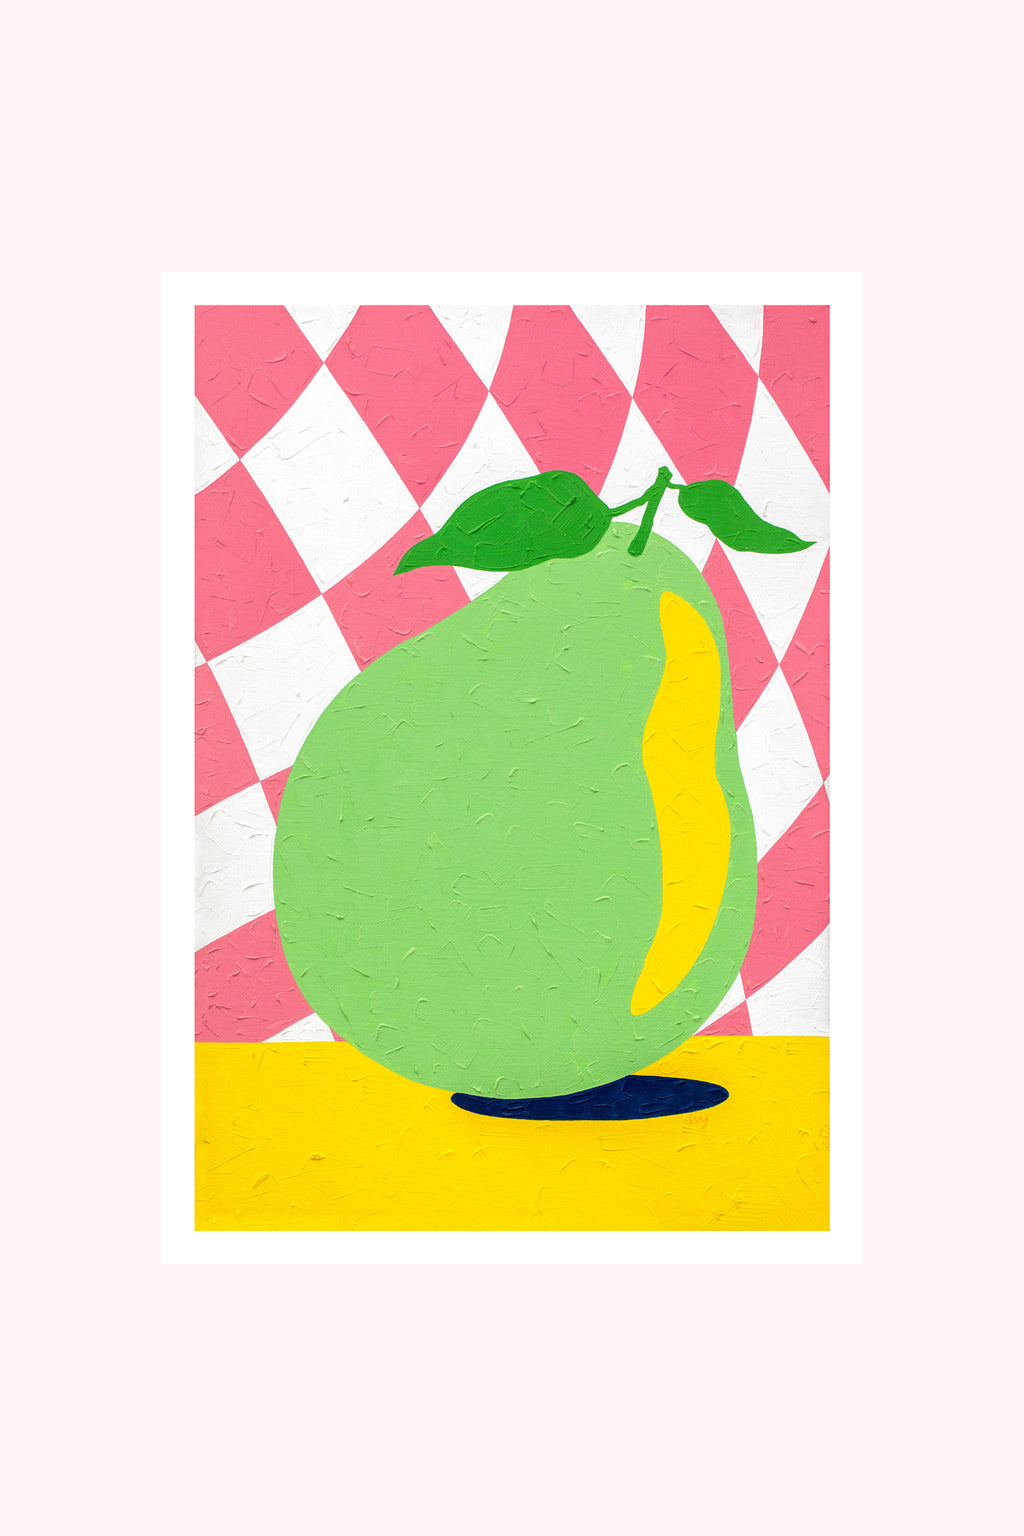 Artwork / Checked Pear